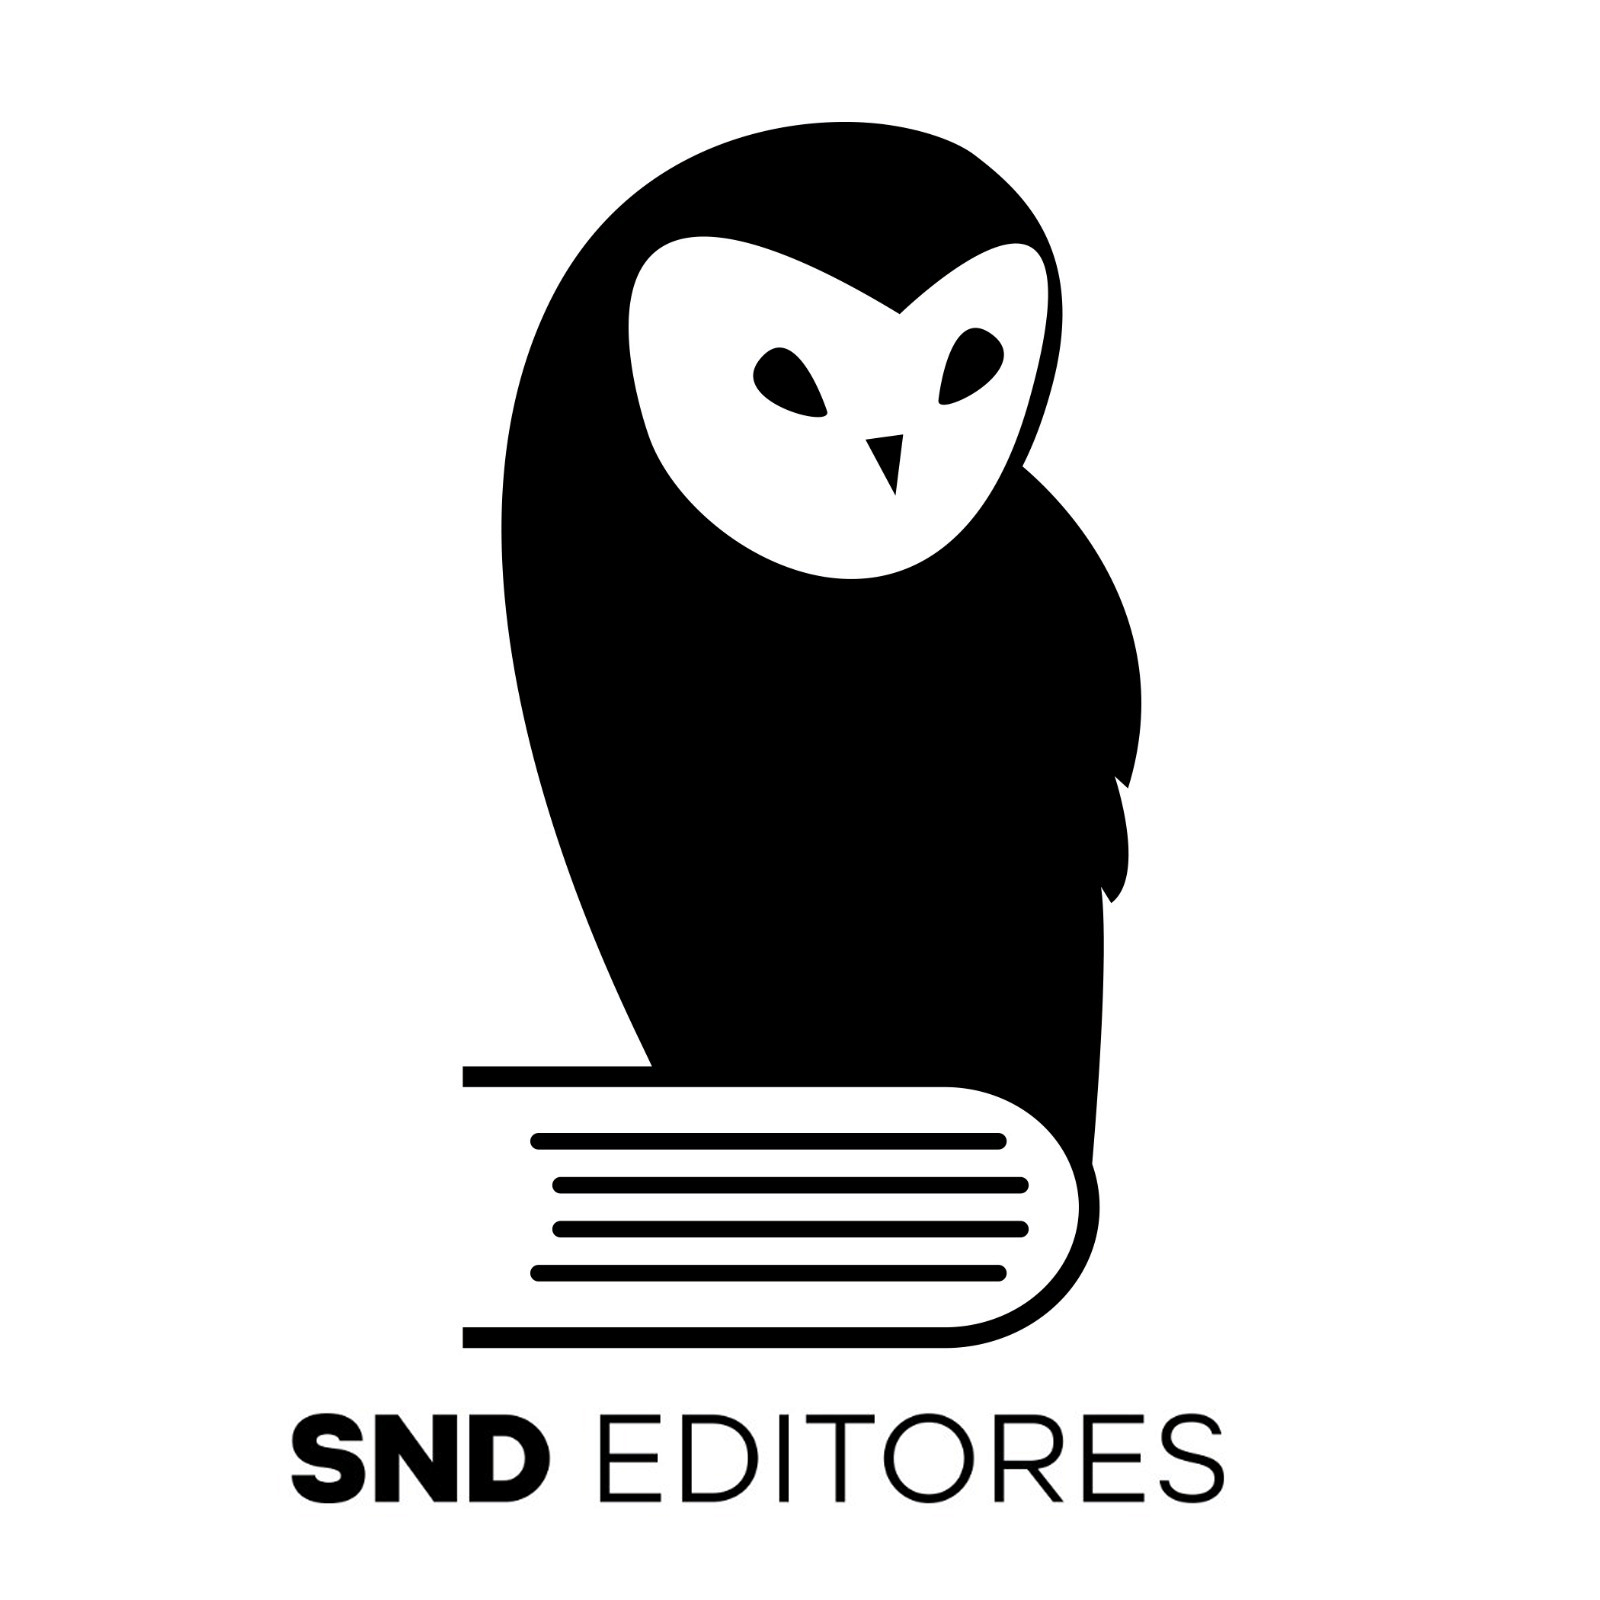 SND EDITORES